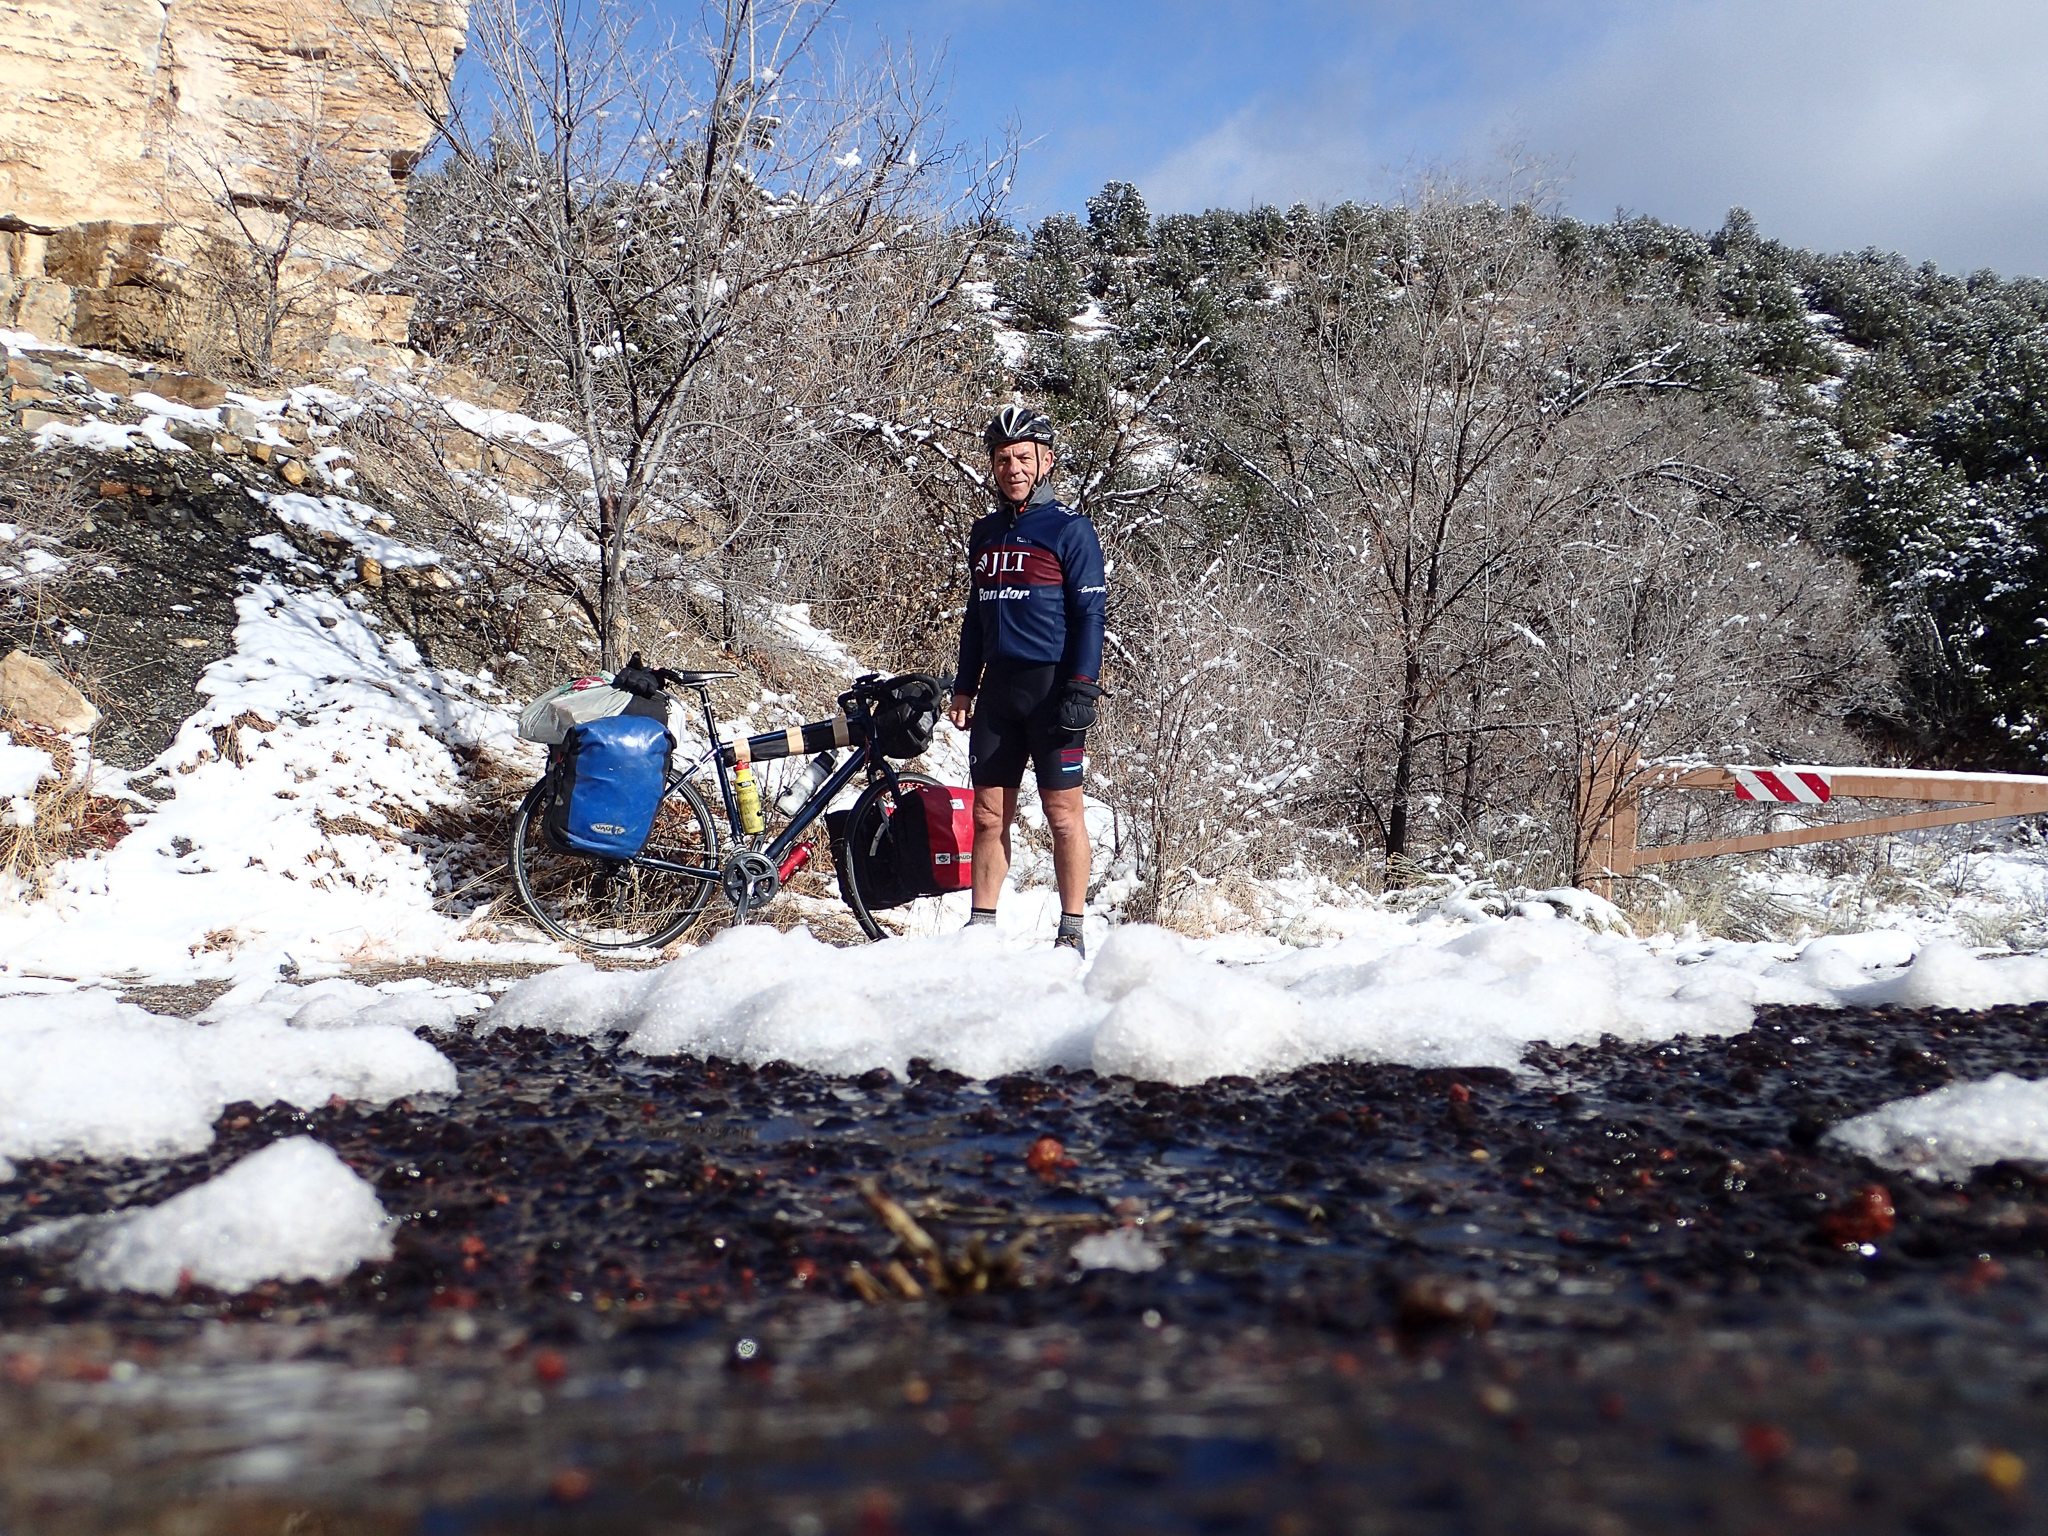 Good combo: snow and shorts